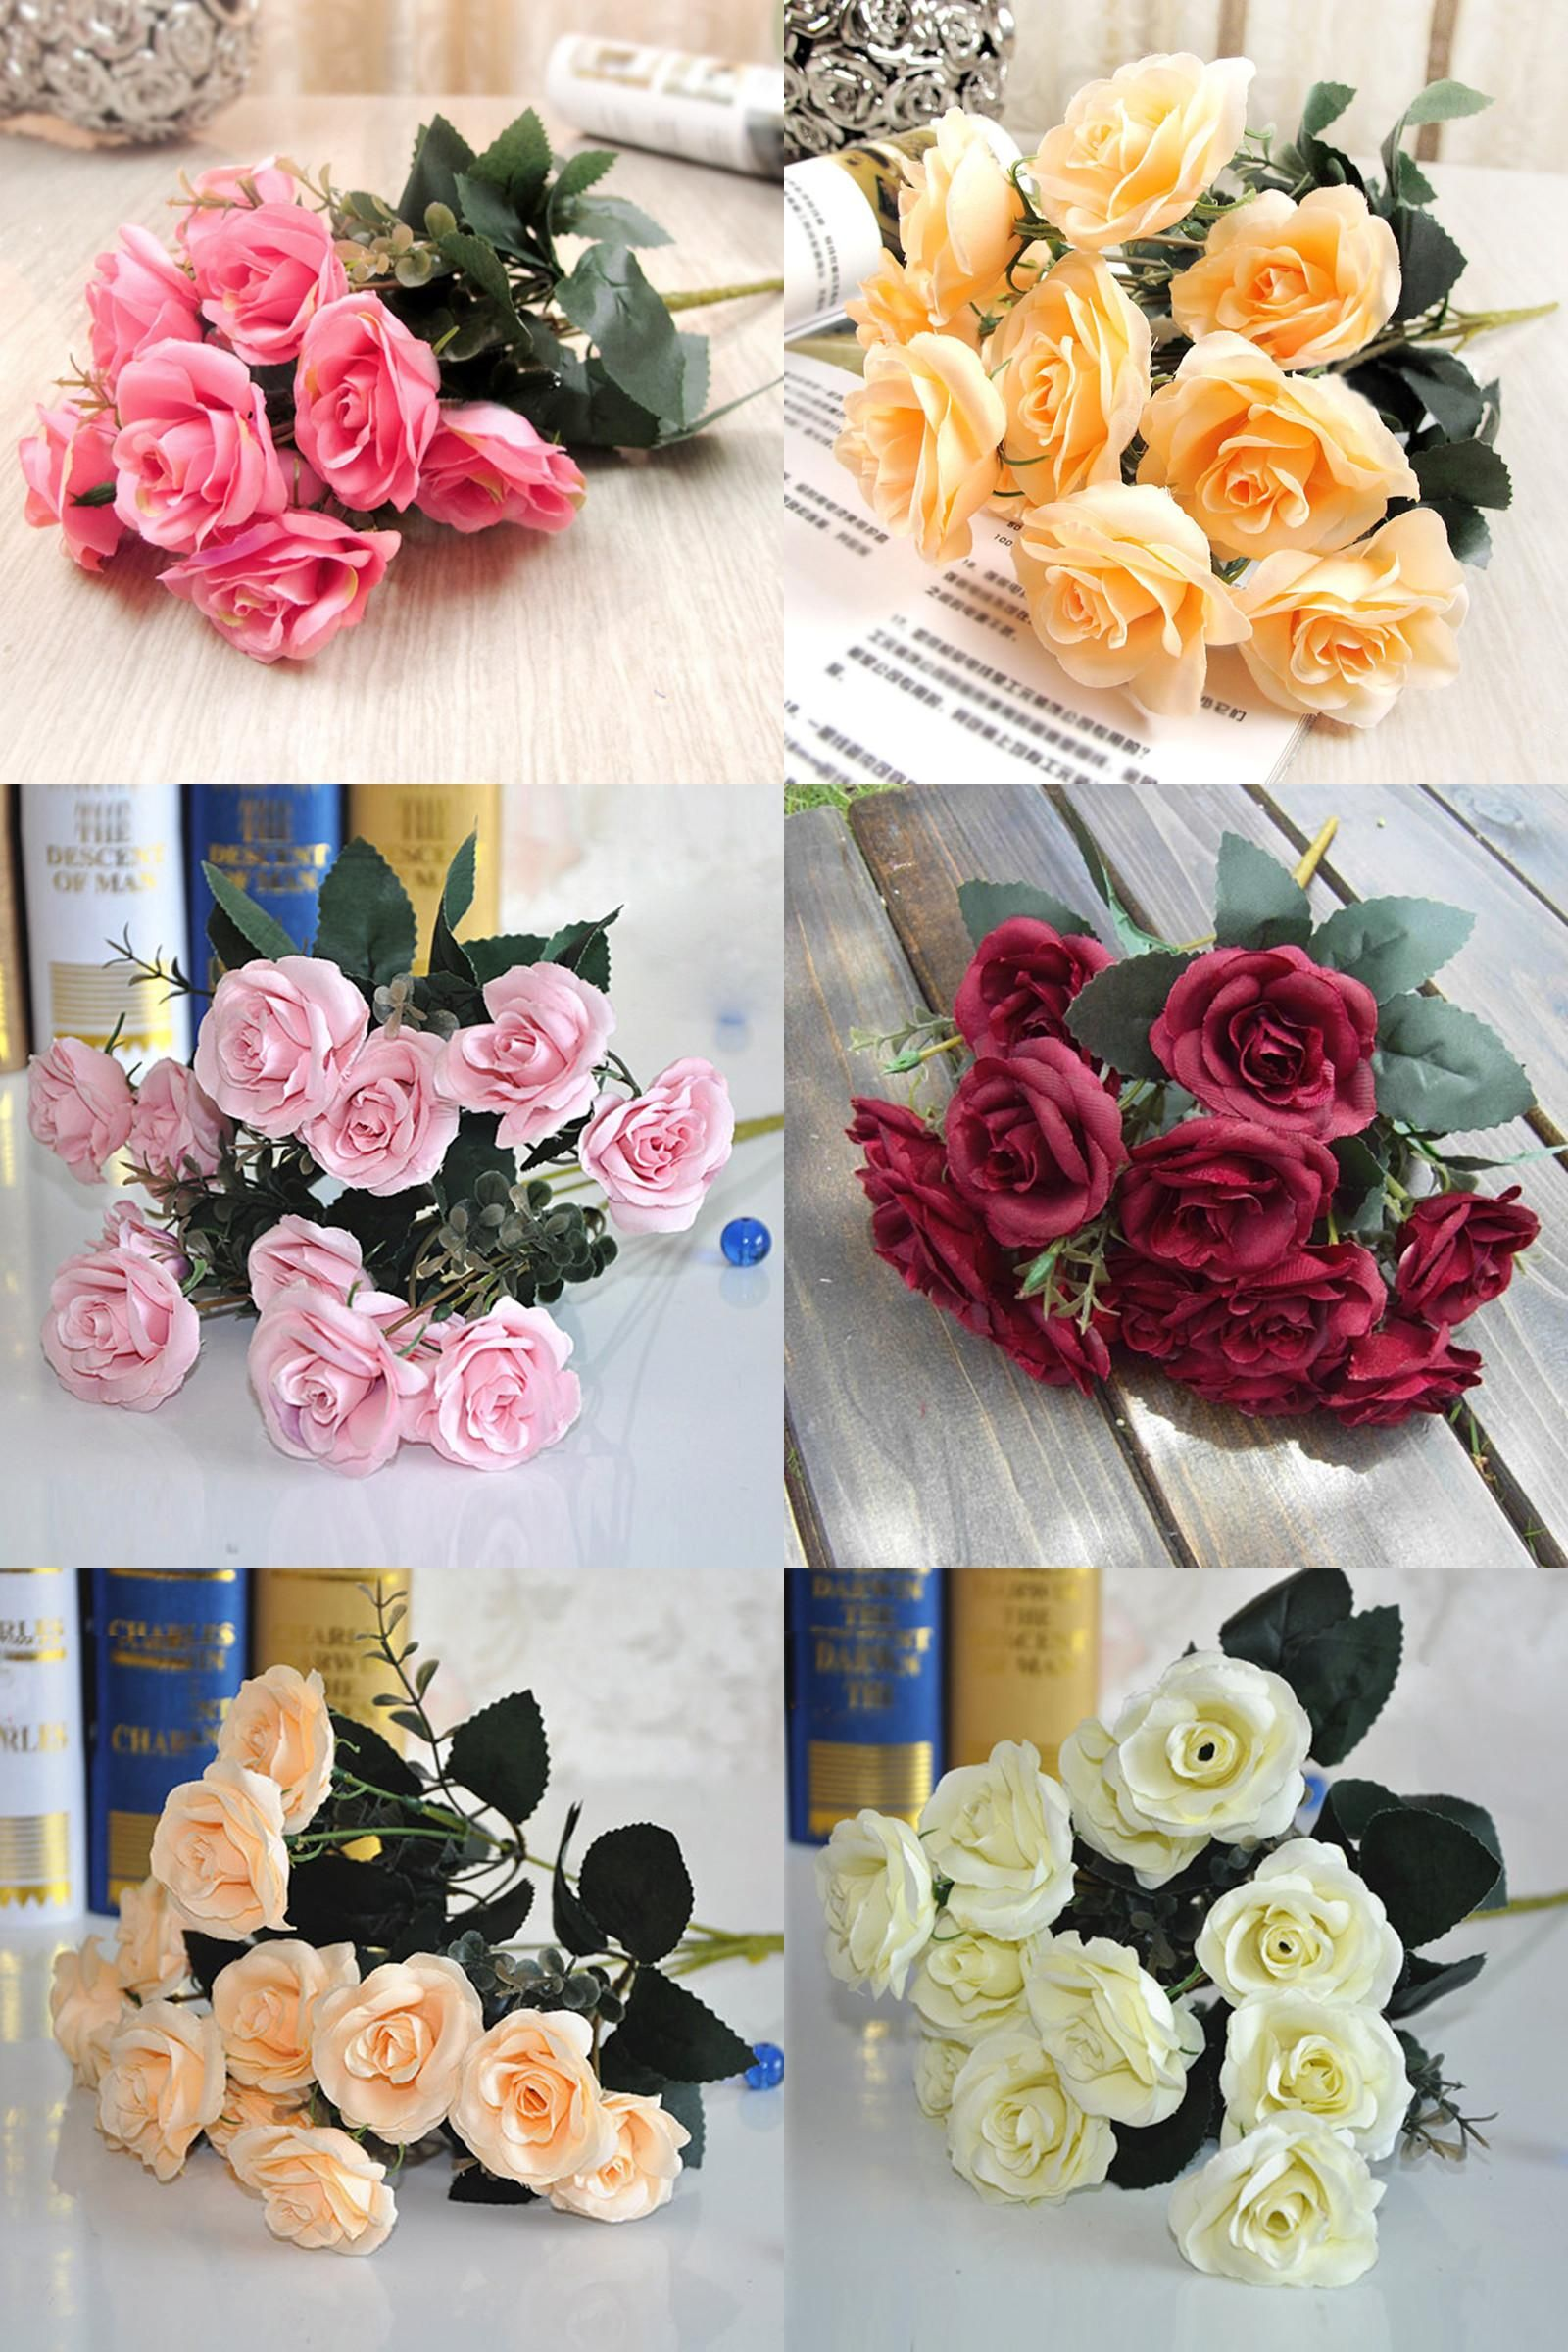 Wedding decorations at home  Visit to Buy New  Heads Rose Silk Artificial Flowers Leaf Plants